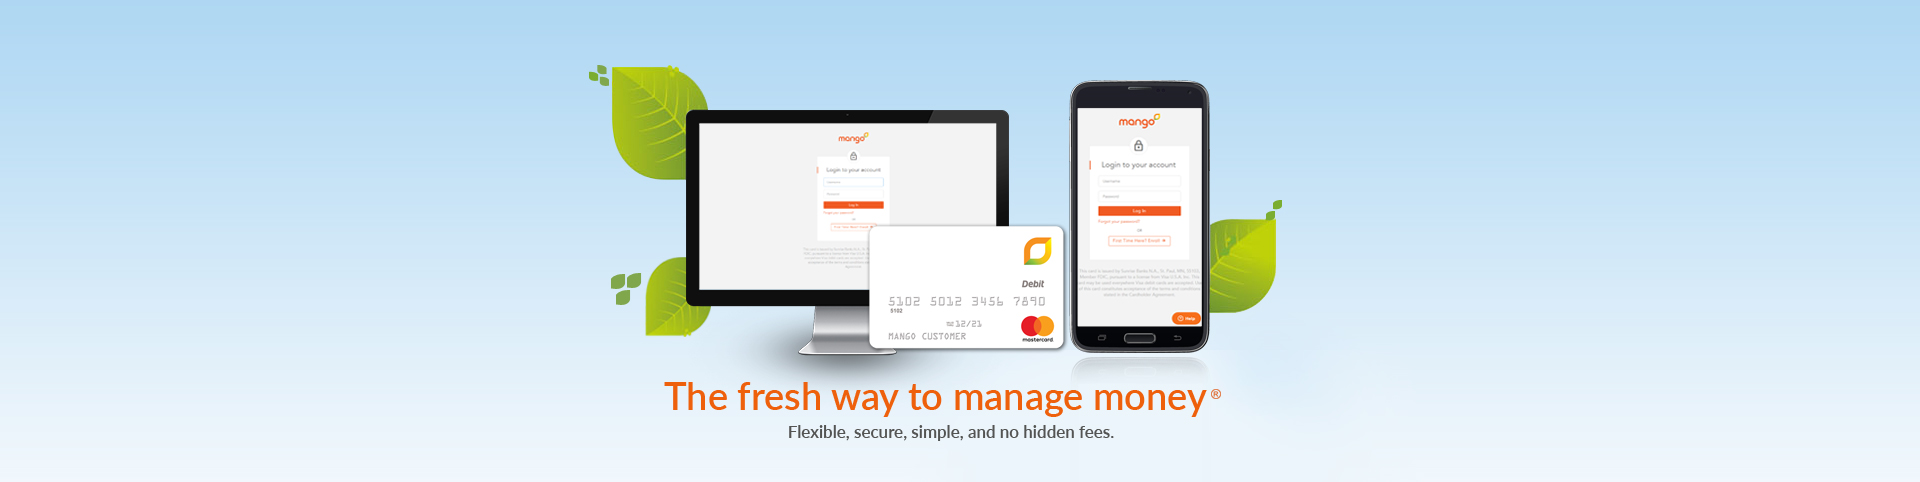 The-fresh-way-to-manage-money